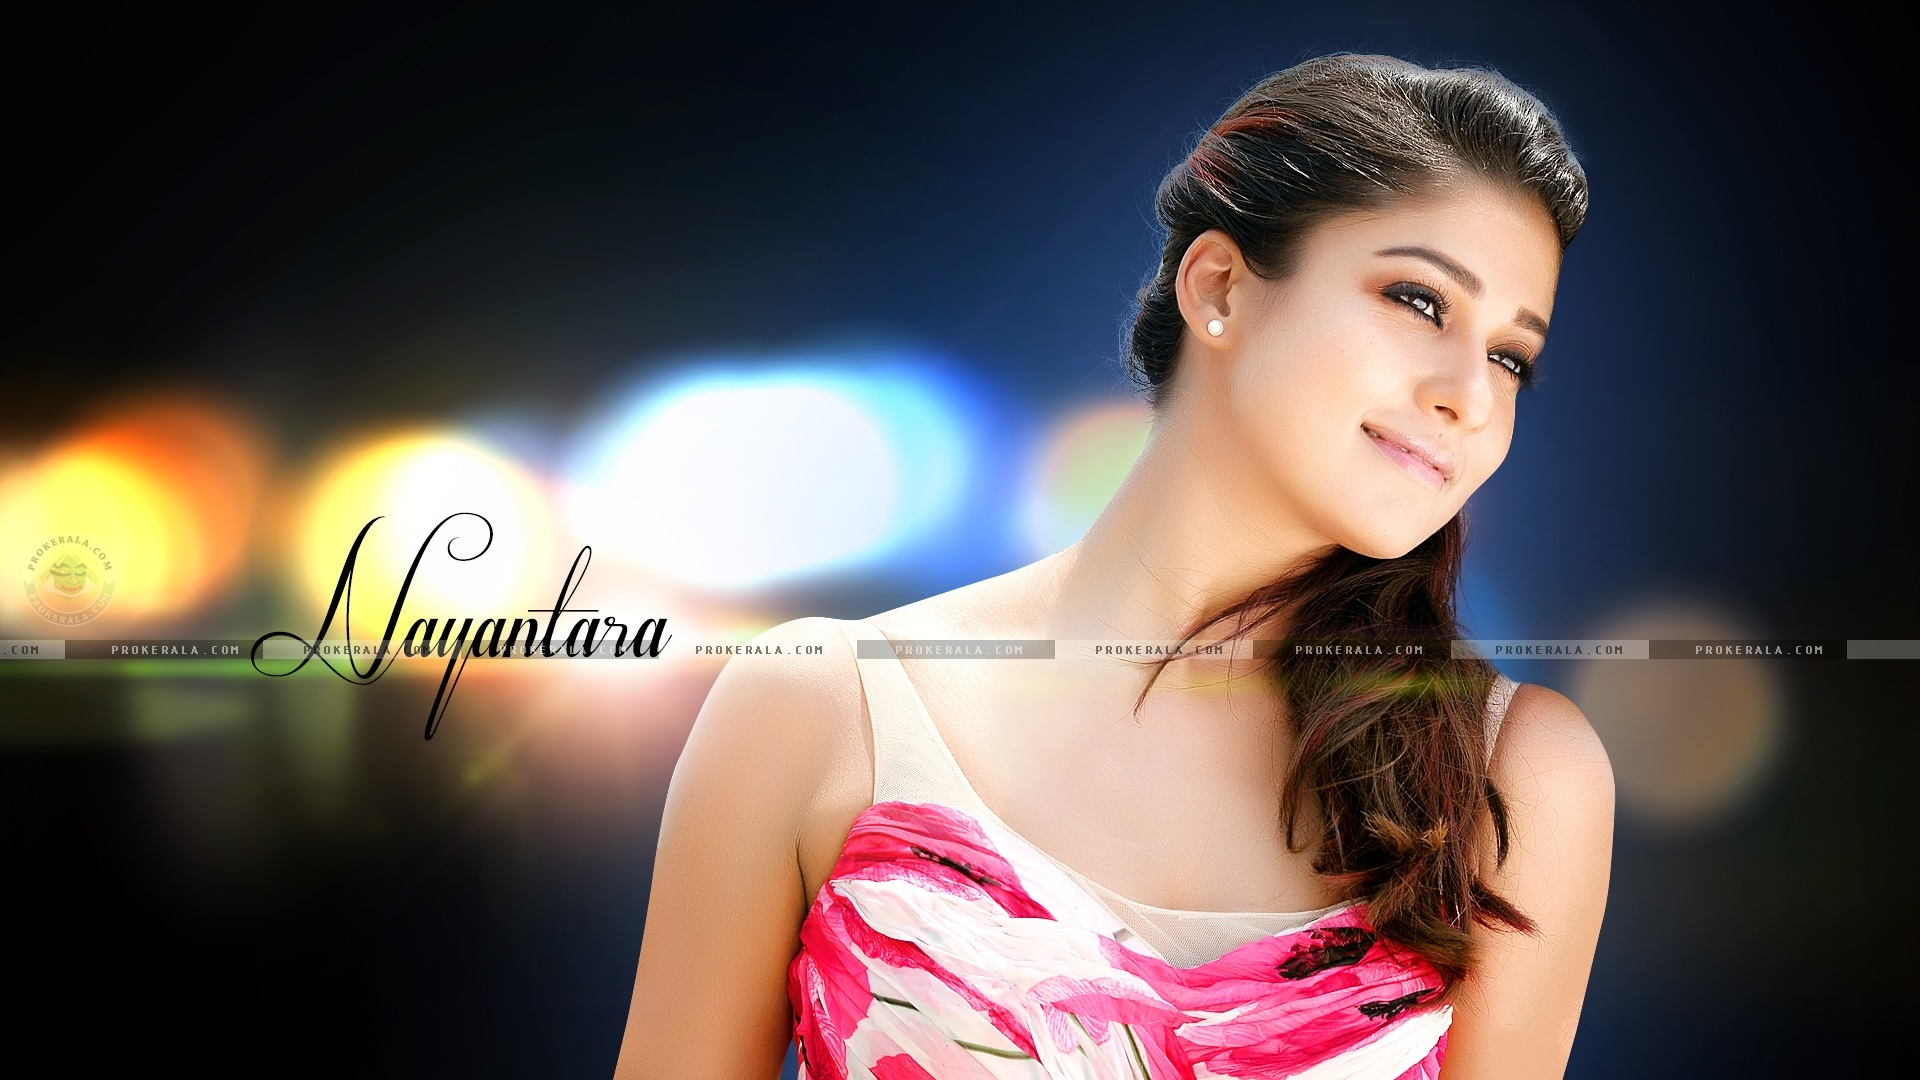 Nayanthara Hd Images 25 Cute Pictures: Nayanthara Photos 20 Most Beautiful Collections